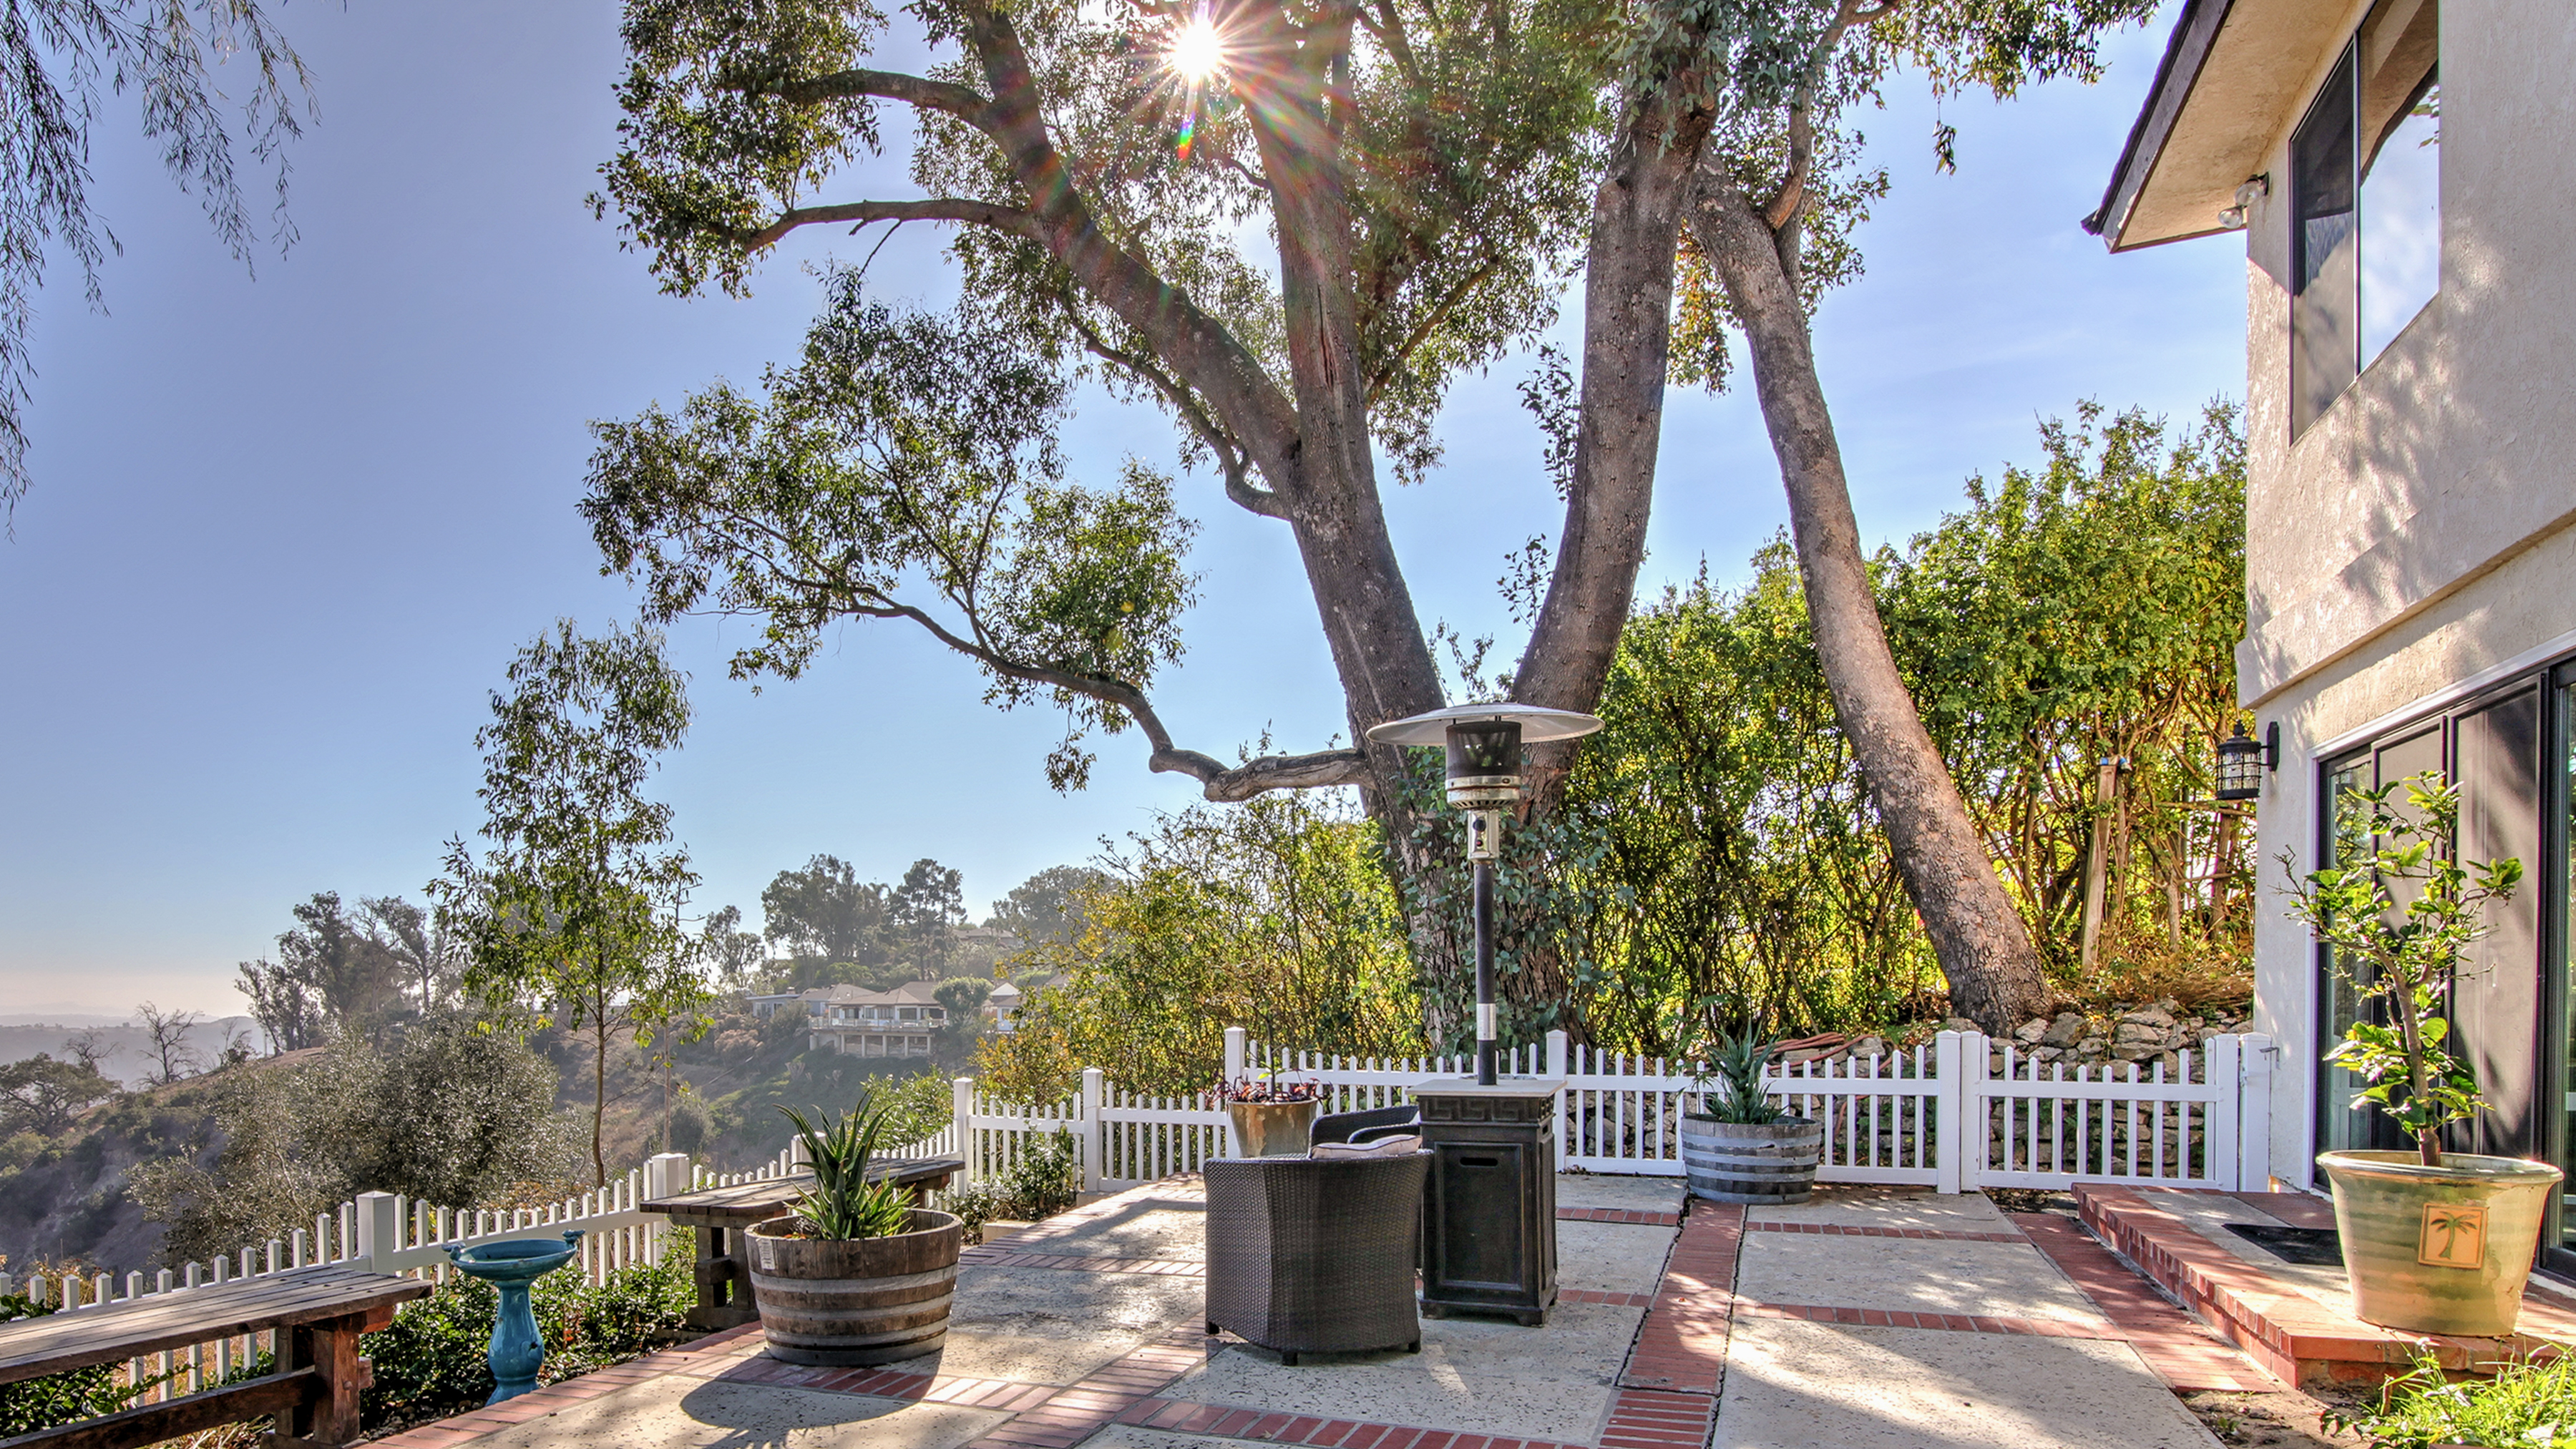 Laguna Beach CA Vacation Rental Welcome to your